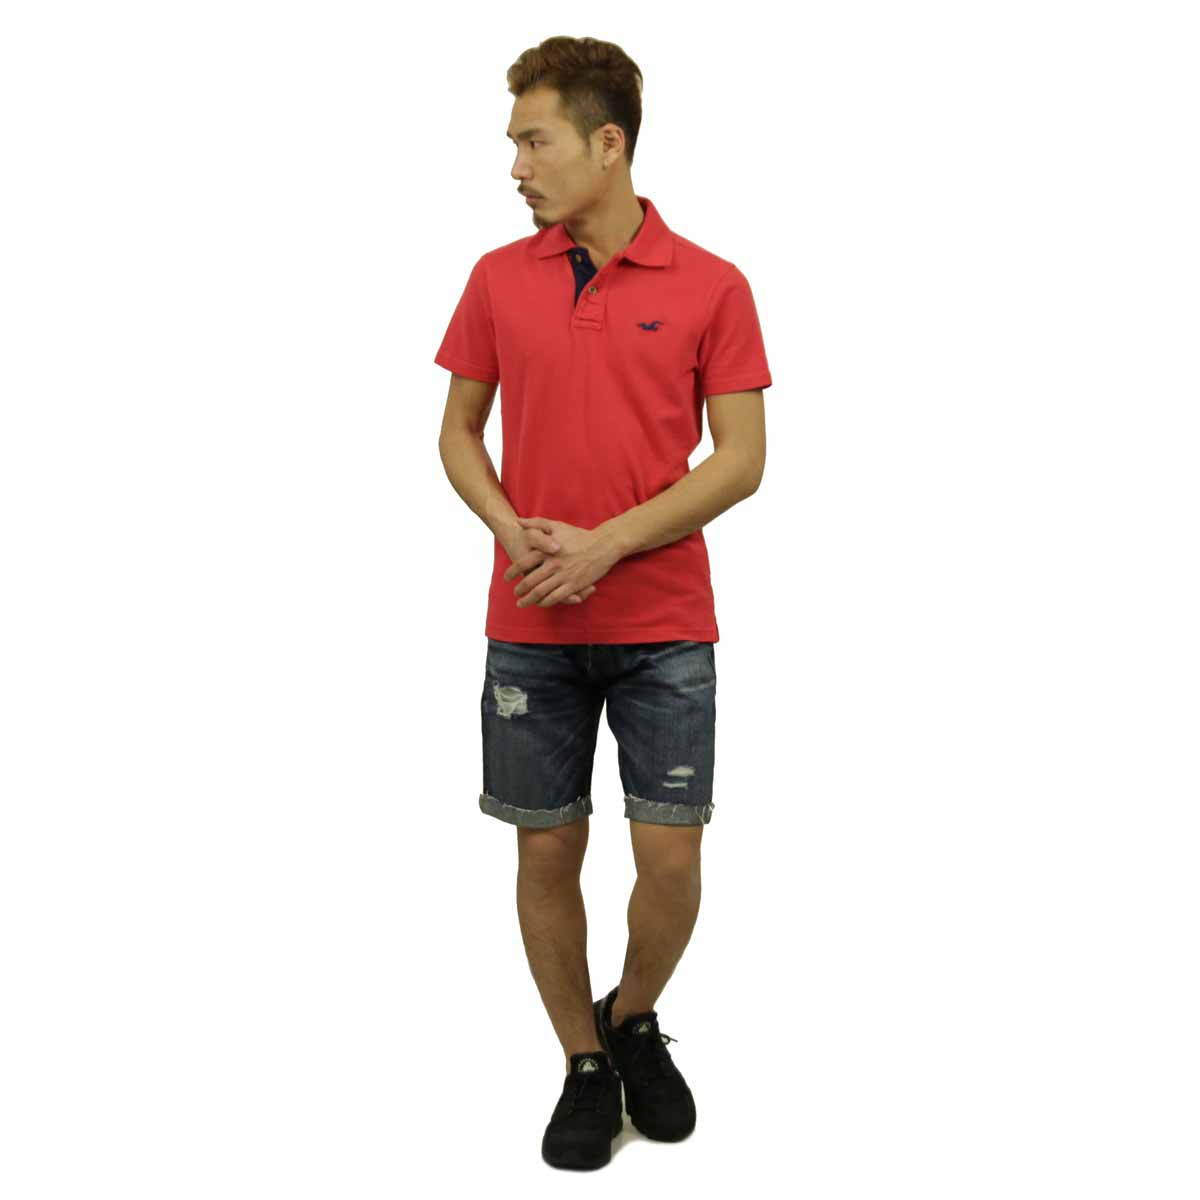 Hollister HOLLISTER AE men's polo shirt Pearl Street Polo 321-364-0415-050 P06Dec14